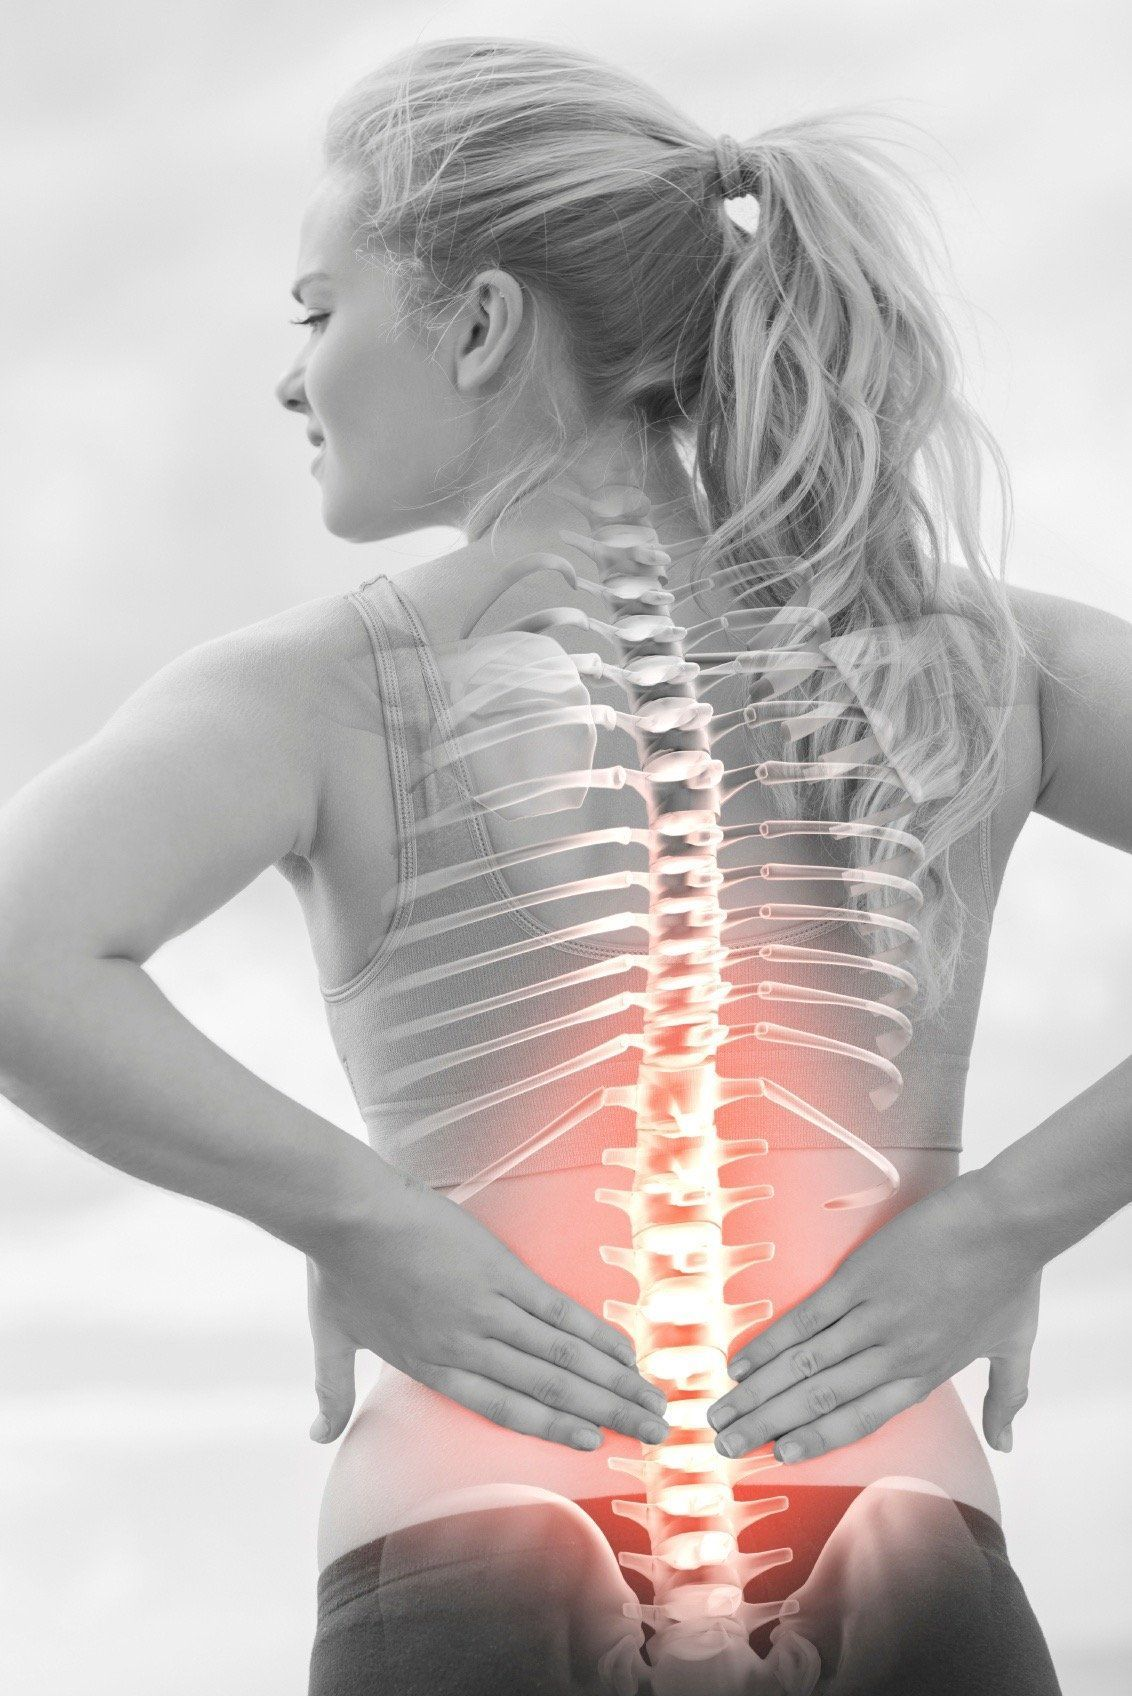 Woman with Back Pain because of Dehydration